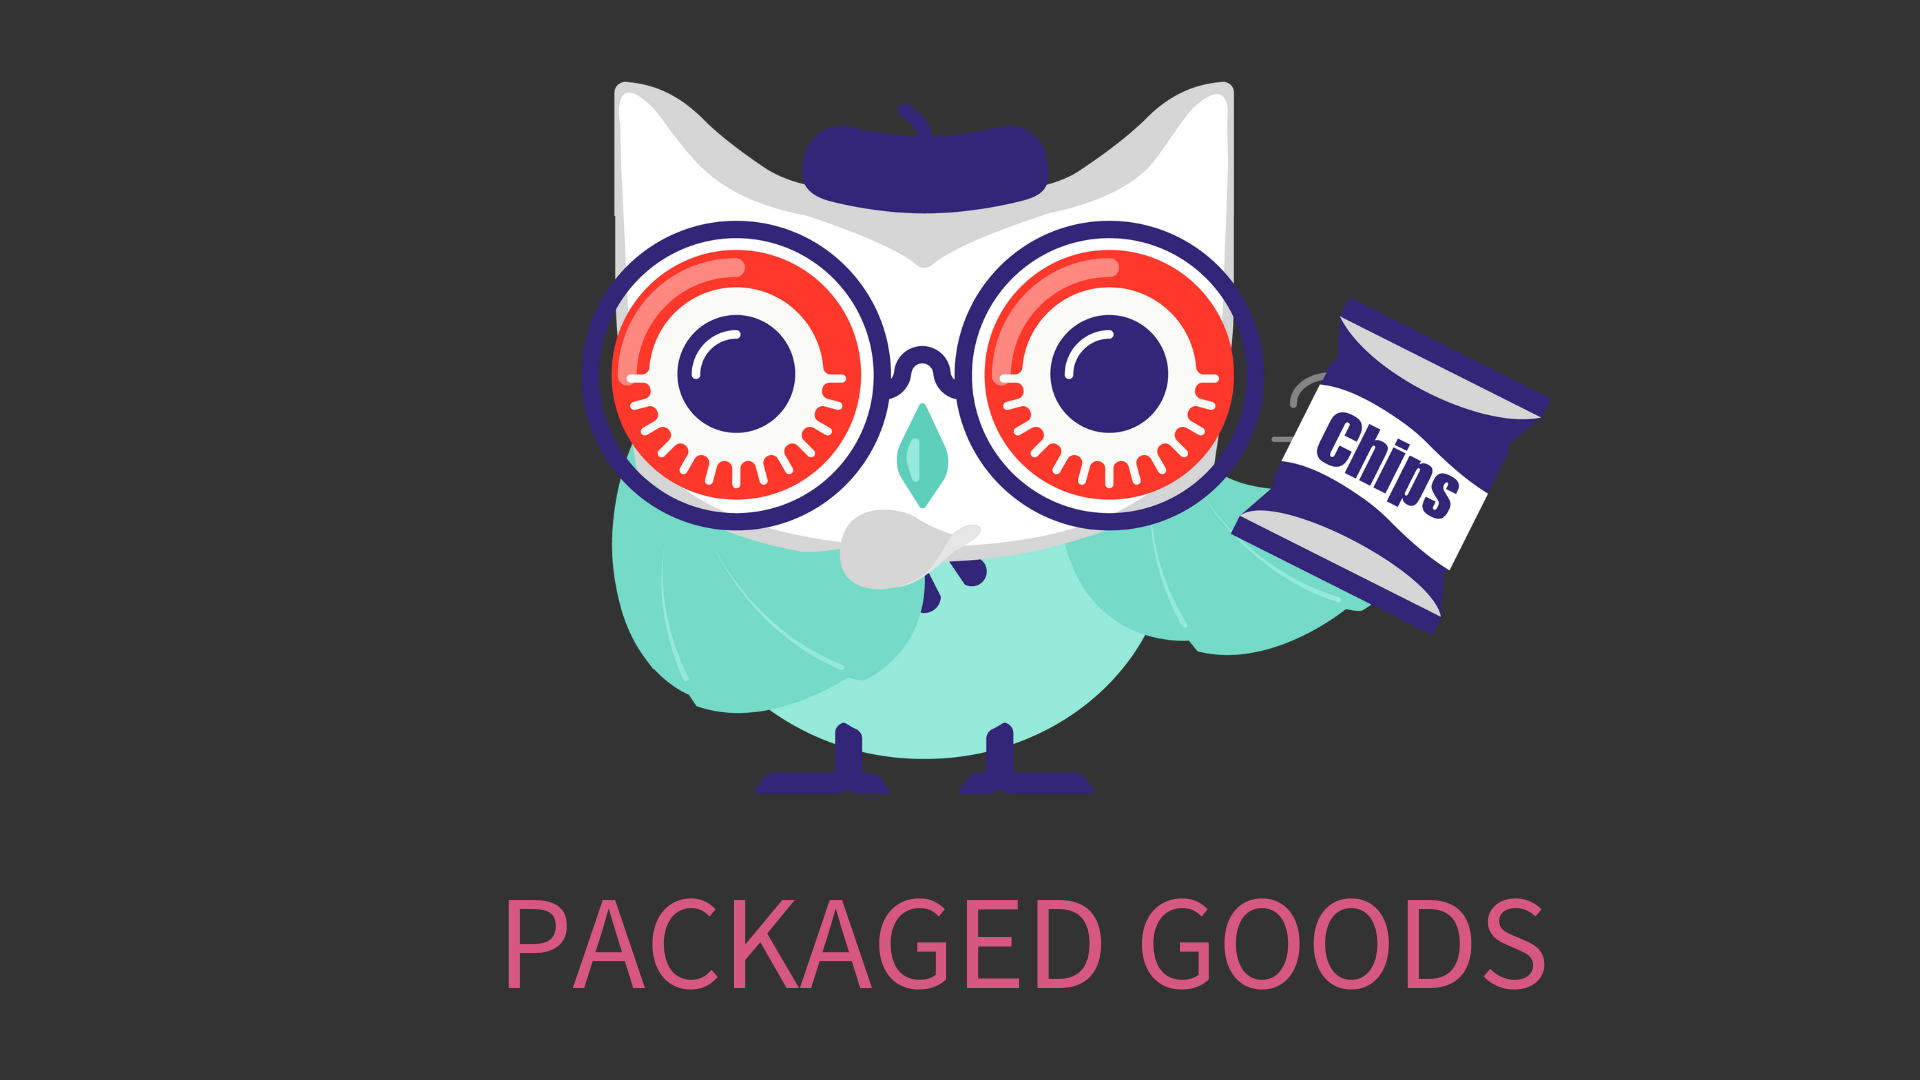 Packaged goods